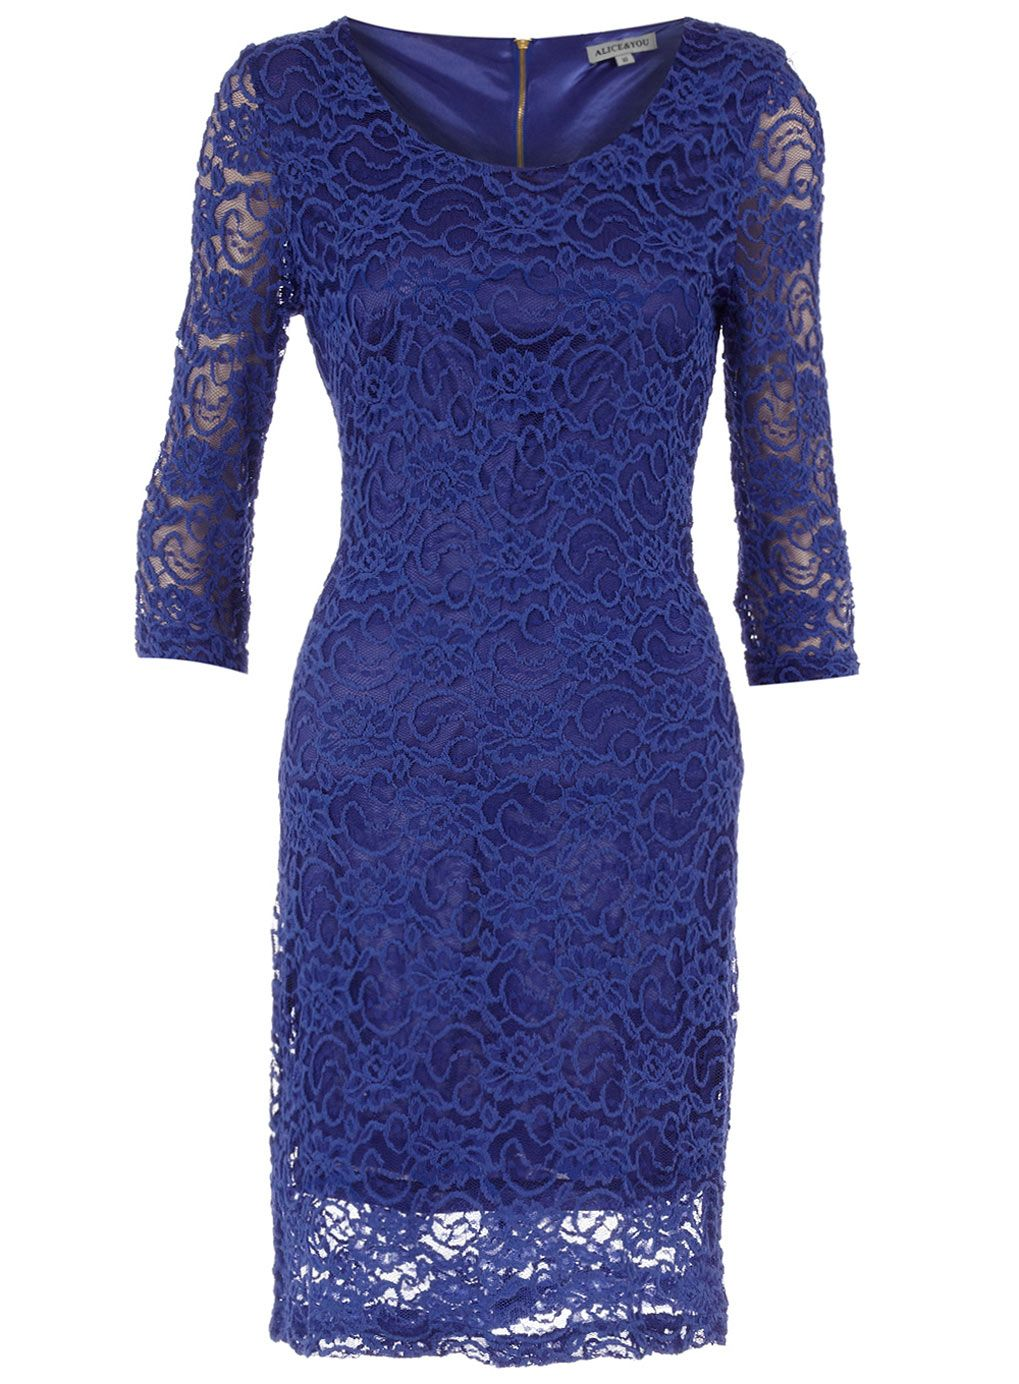 Alice & You Royal blue lace dress - View All Dresses - Dresses ...